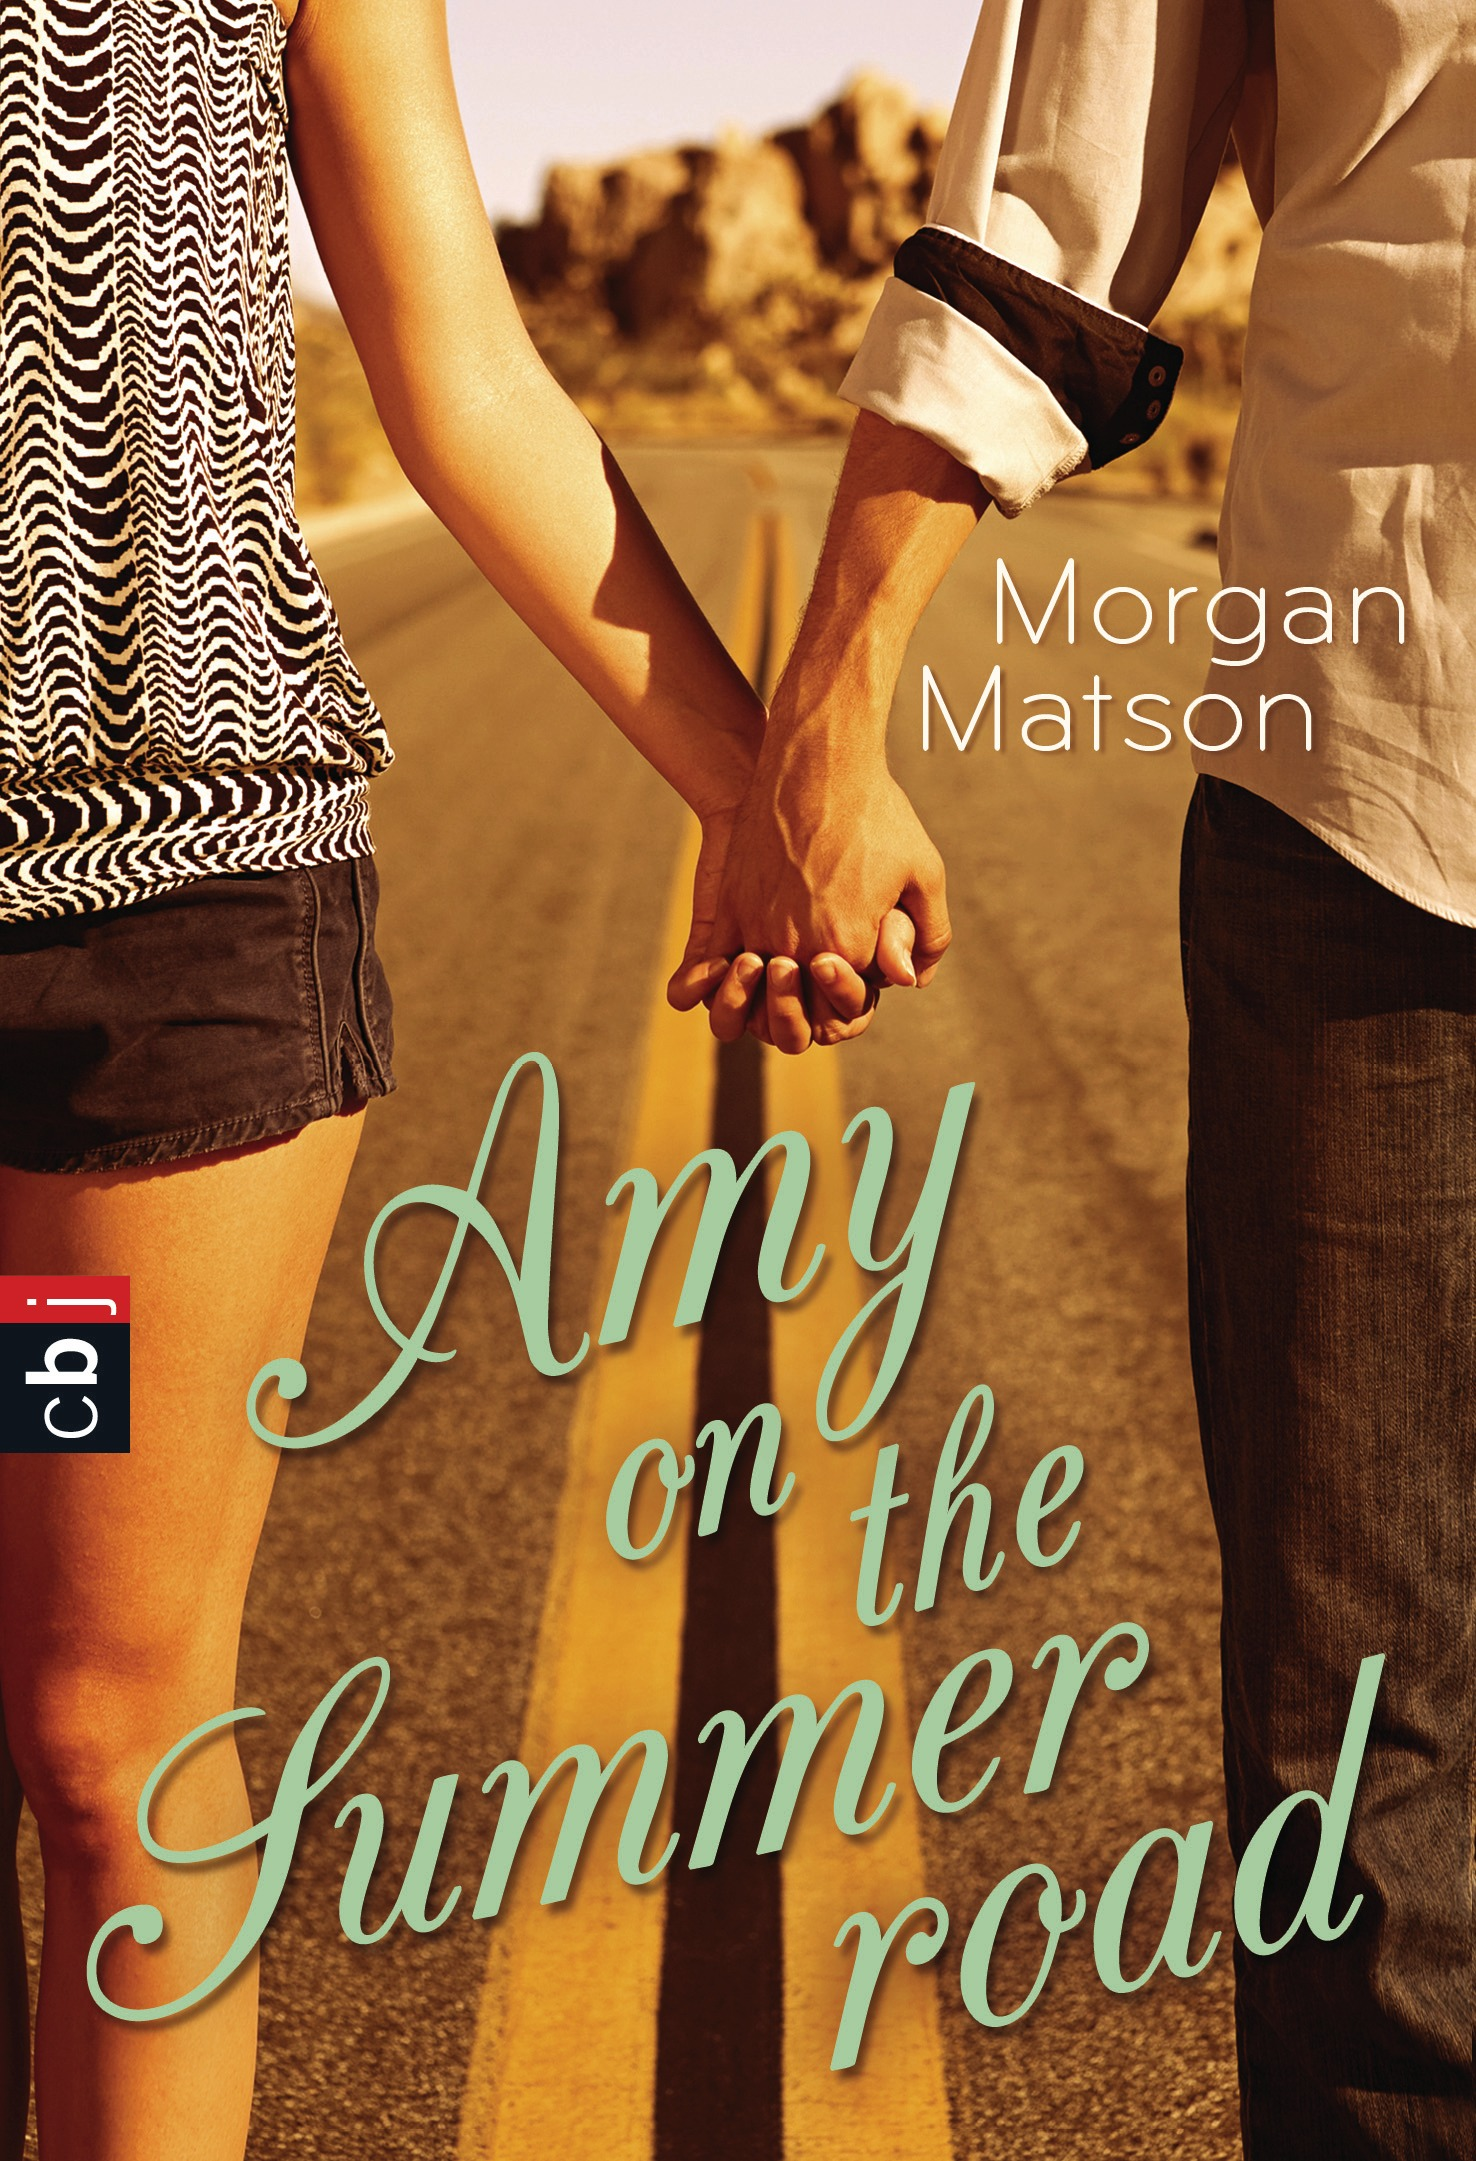 http://www.randomhouse.de/content/edition/covervoila_hires/Matson_MAmy_on_the_Summer_Road_118455.jpg